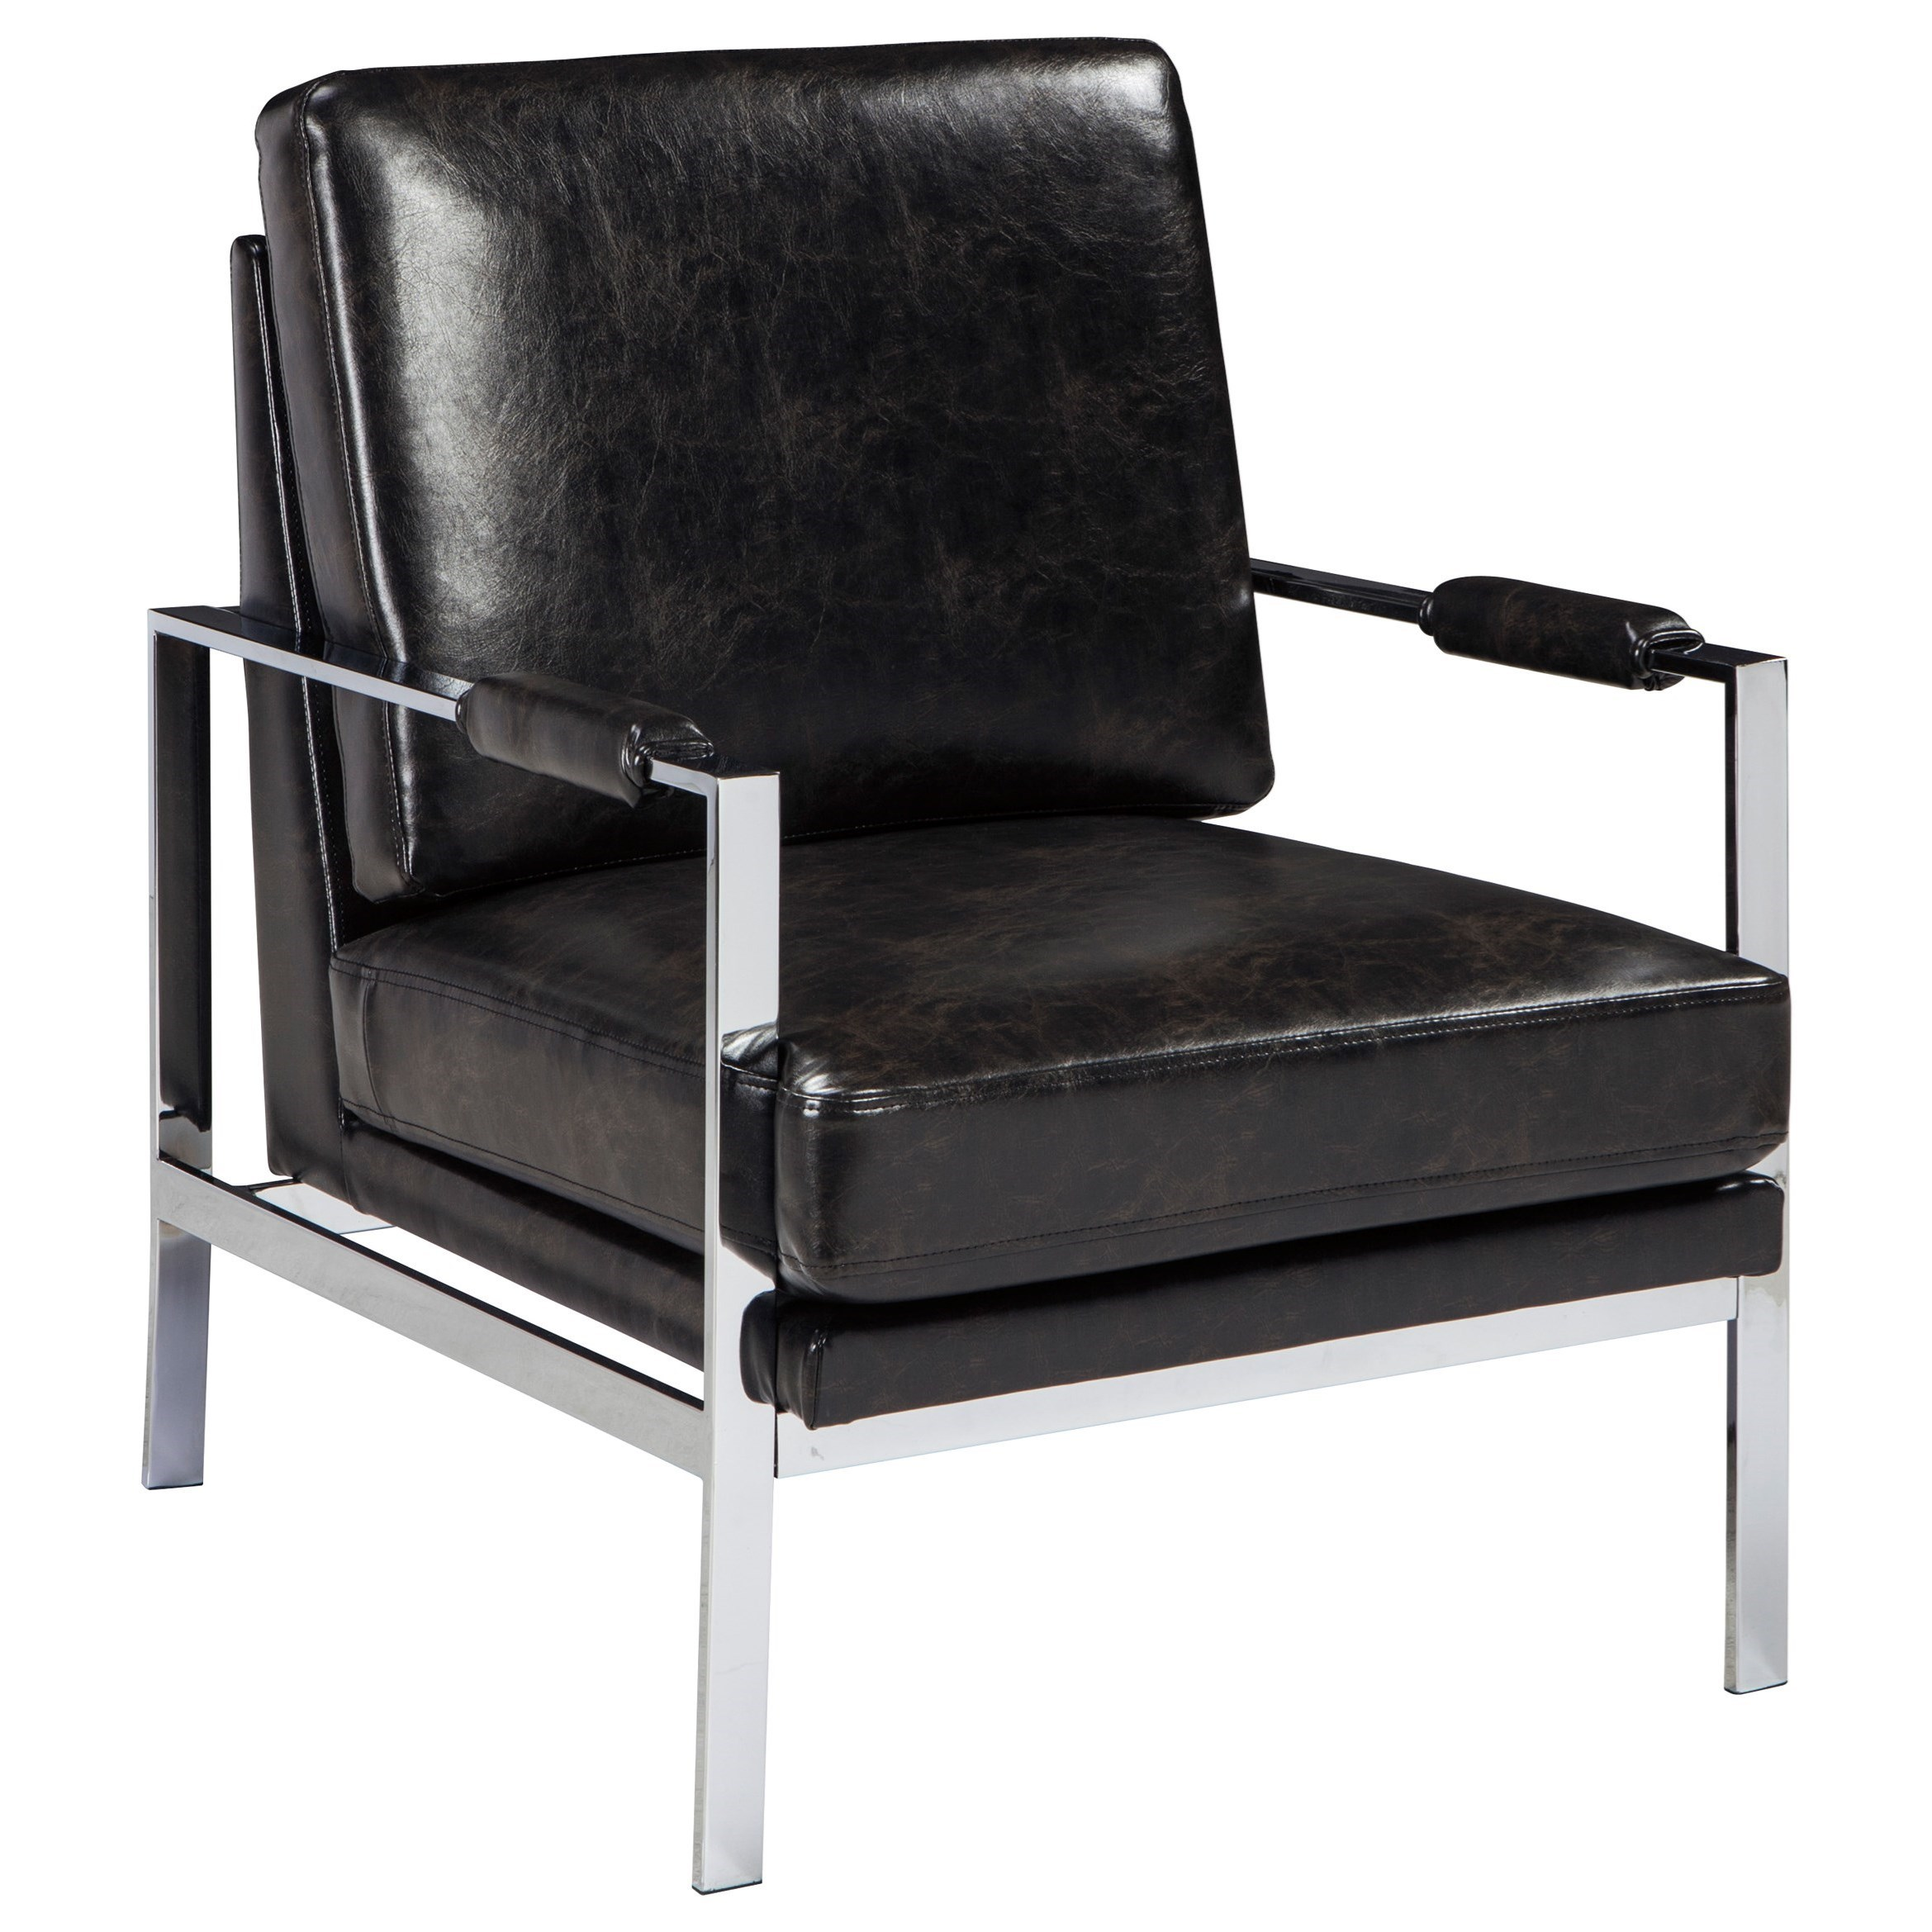 black leather occasional chair rotmans essentials 100 network chrome finish metal arm 11215 | products%2Fsignature design by ashley%2Fcolor%2Fnetwork a3000028 b1